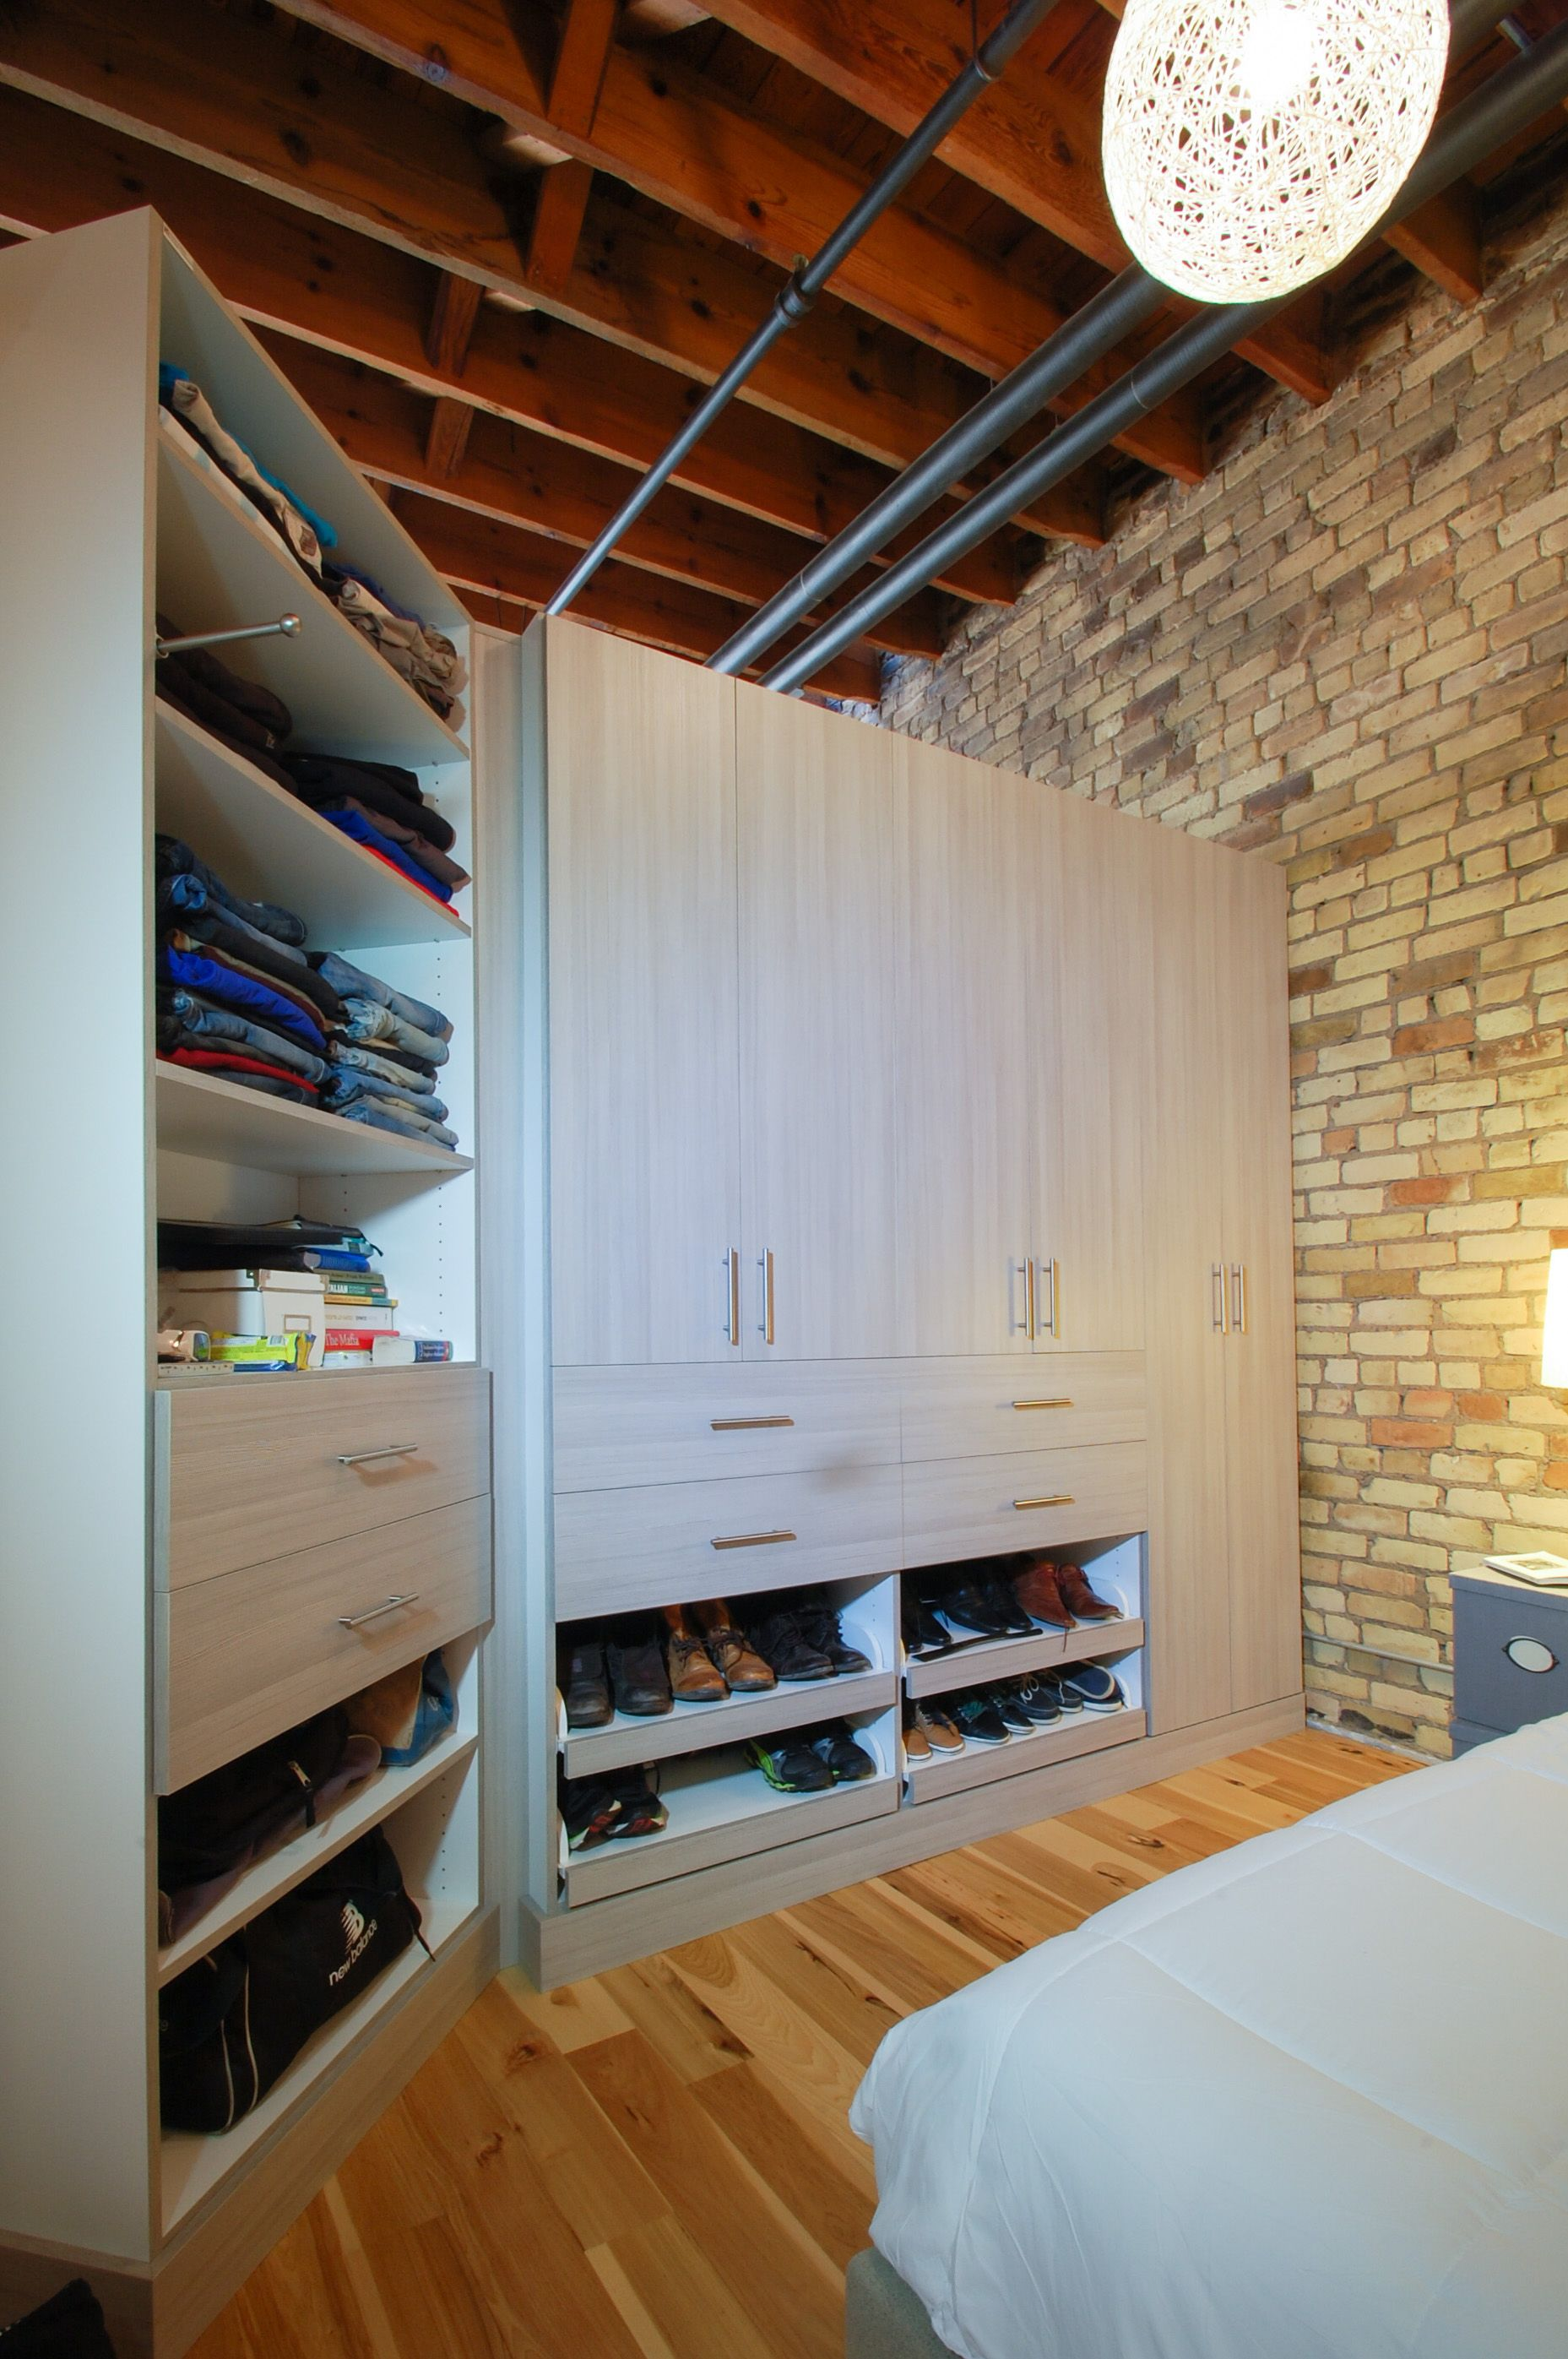 Twin Cities Closet Company Builds Custom Closets, Walk In Closets, Garage  Closets And Much More. Let Us Renovate The Closets In Your Home Today!